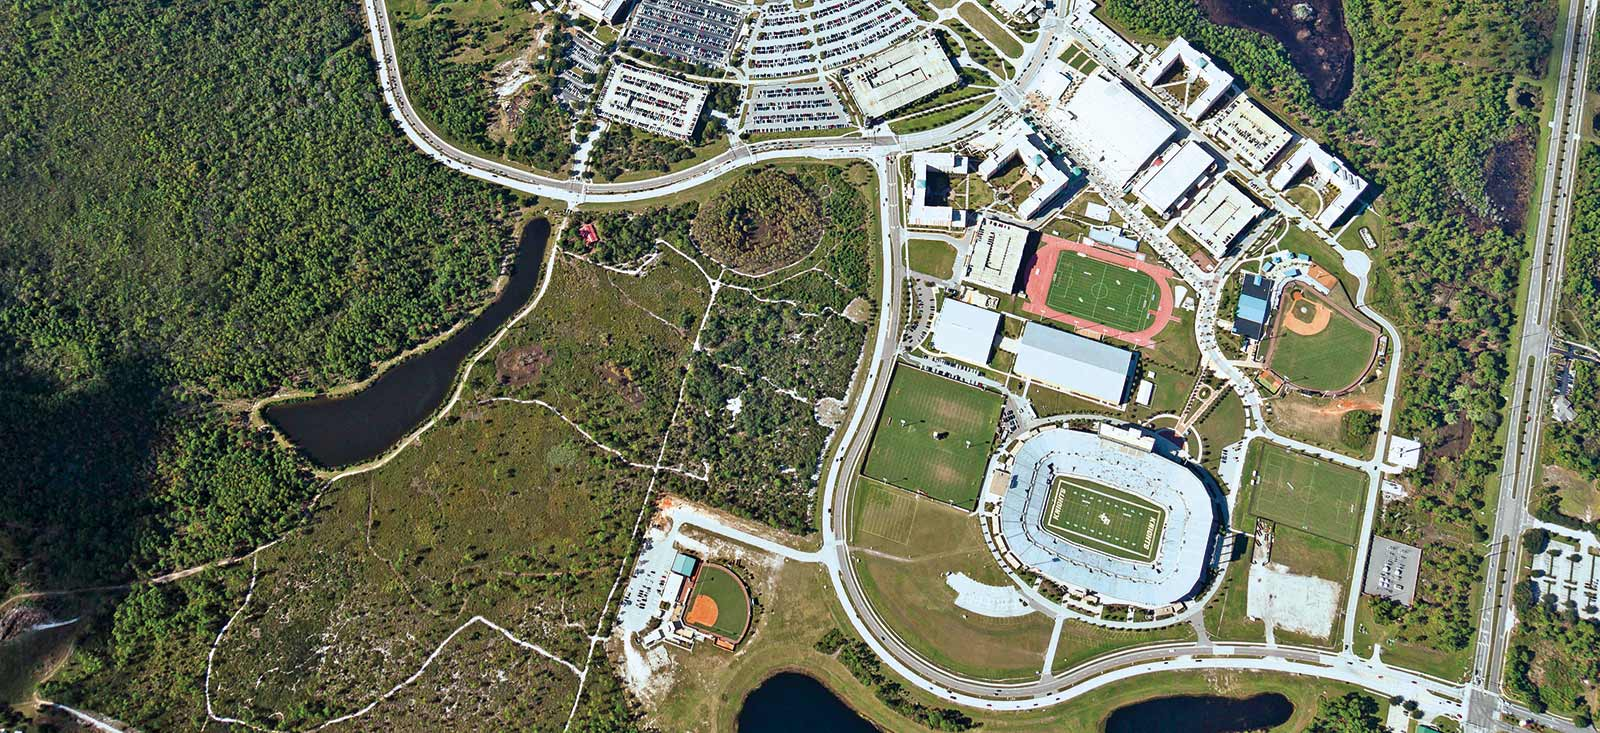 aerial view of north end of ucf campus, focusing on football arena